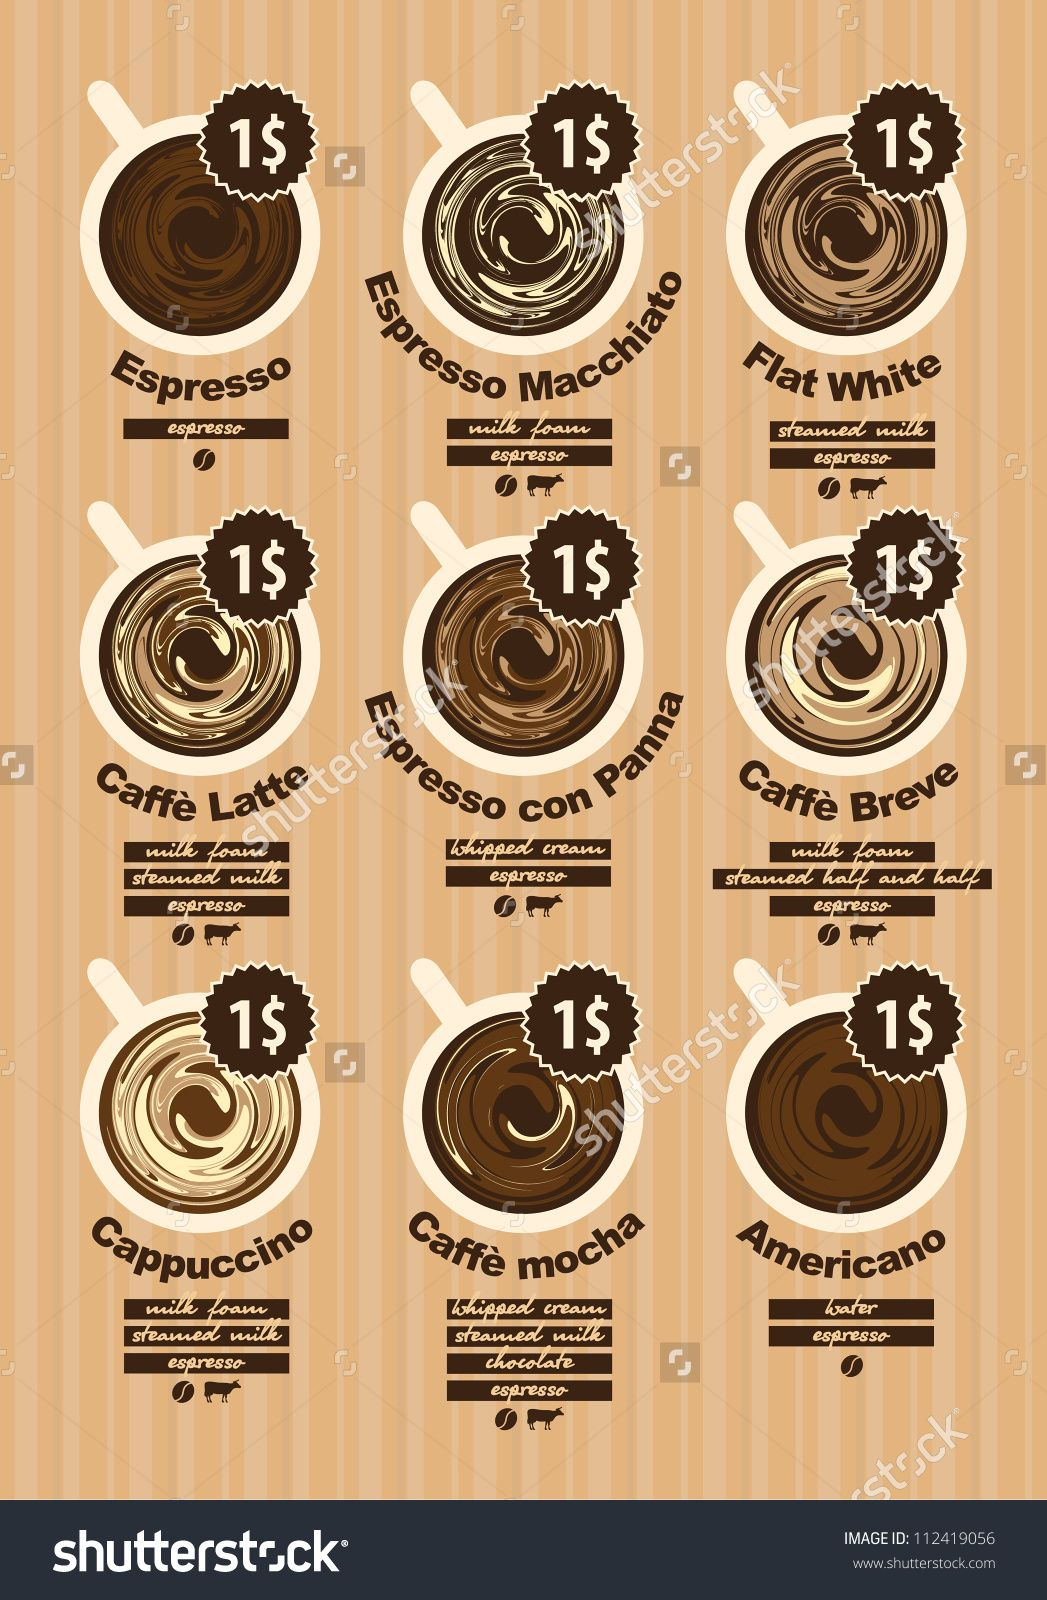 Pin On Barista Tools And Accessories